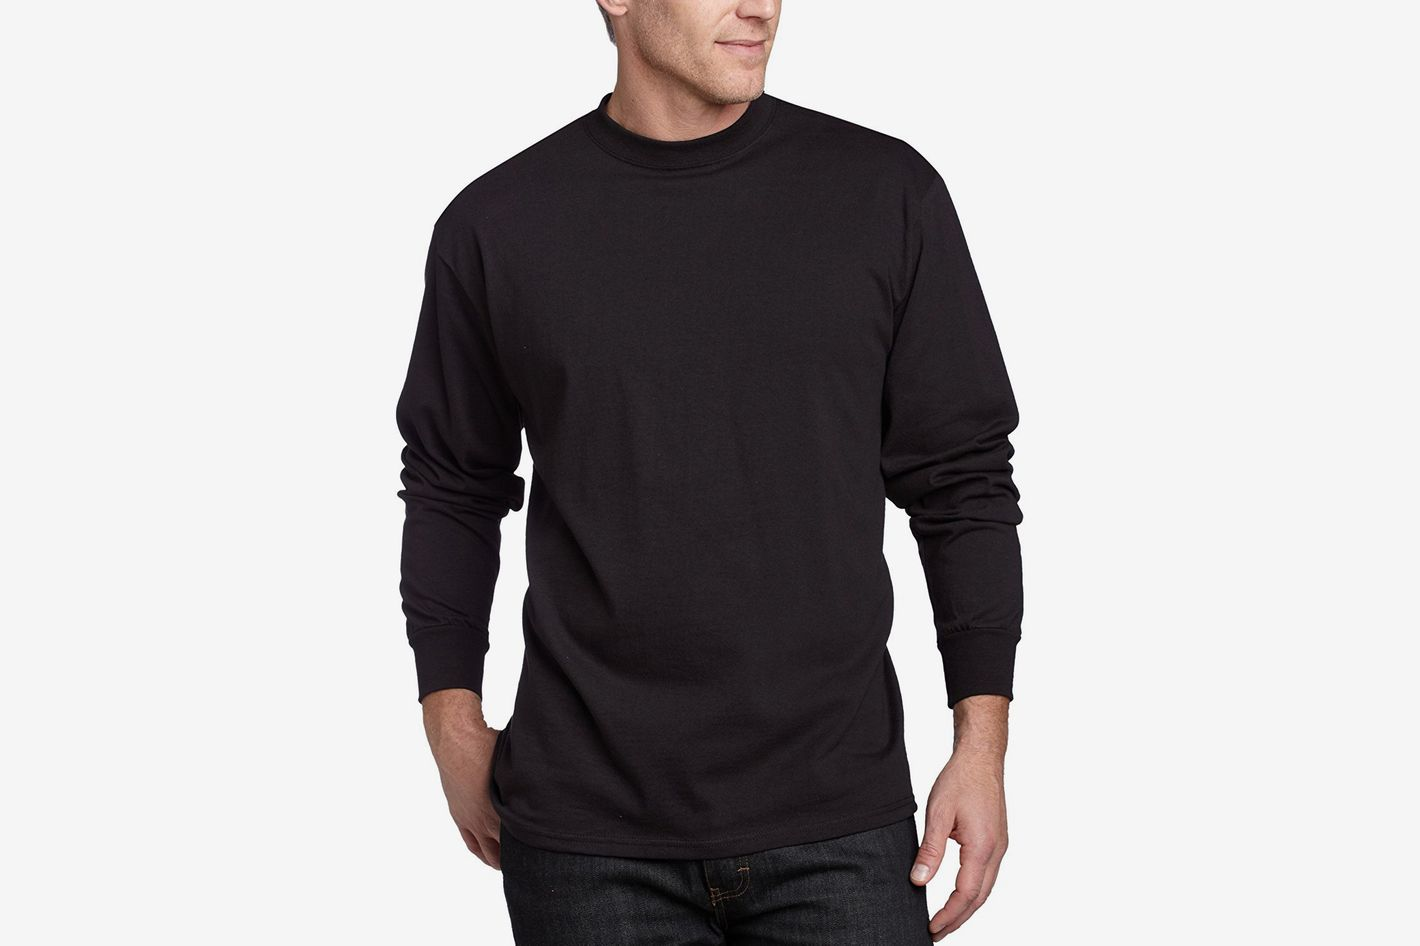 MJ Soffe Men s Long-Sleeve Cotton T-Shirt 0ada9741432